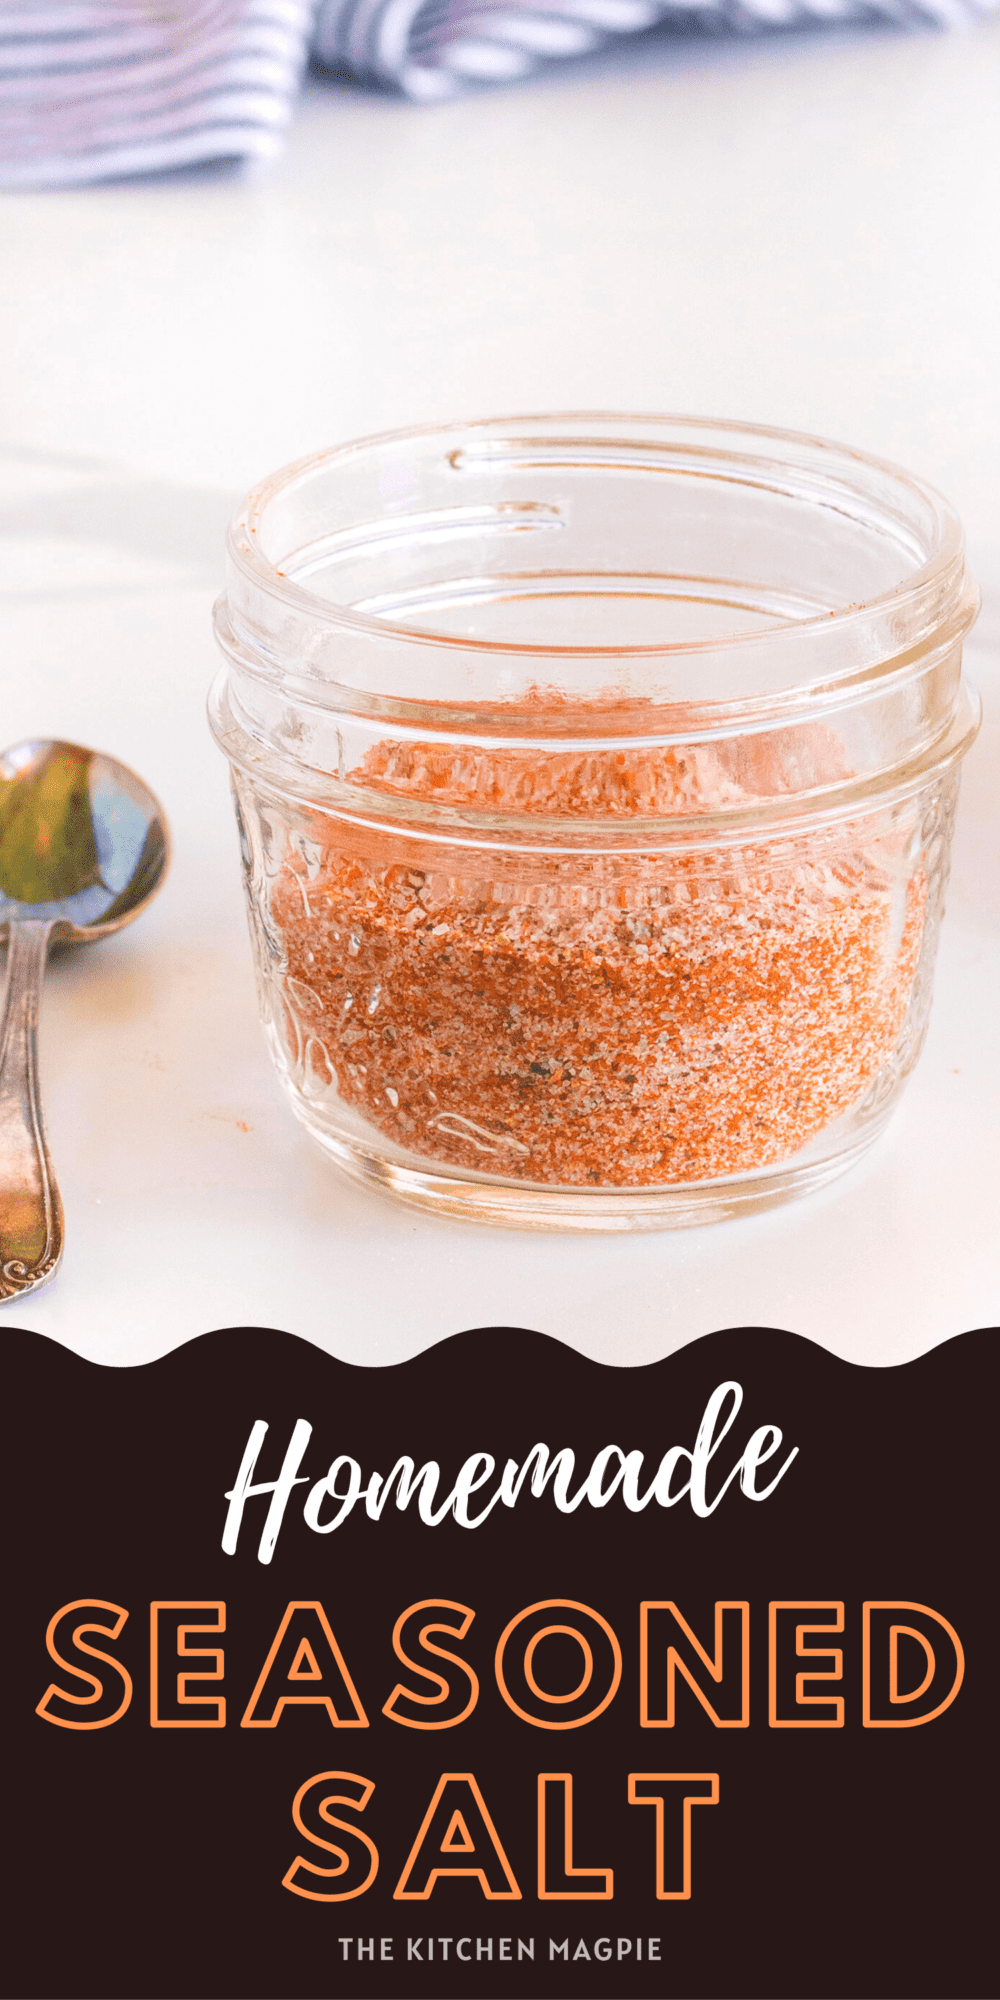 How to make homemade seasoned salt for those times that you can't get to the store! You can double this batch, and make sure to season to your personal preferences.